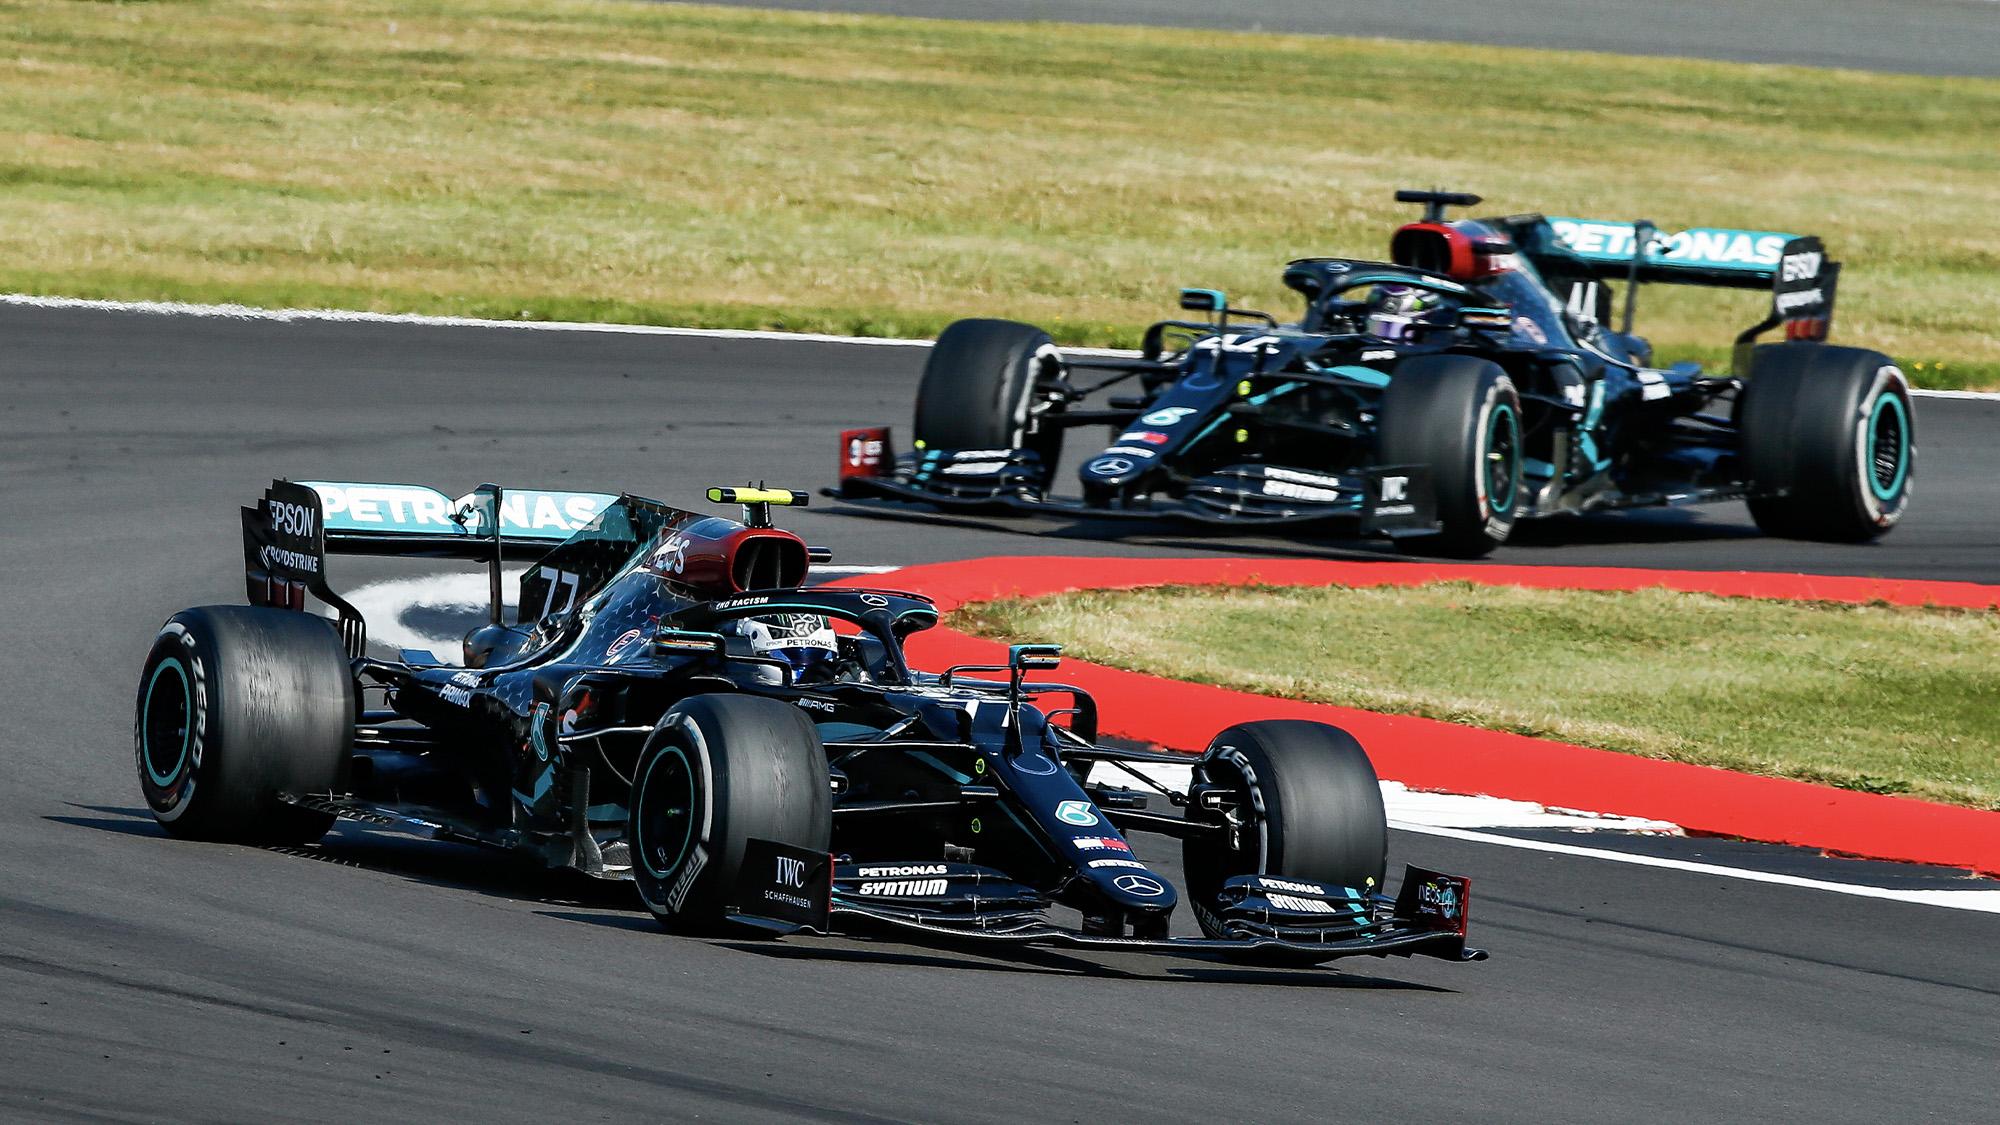 Lewis Hamilton catches Valtteri Bottas towards the end of the 2020 F1 70th Anniversary Grand Prix